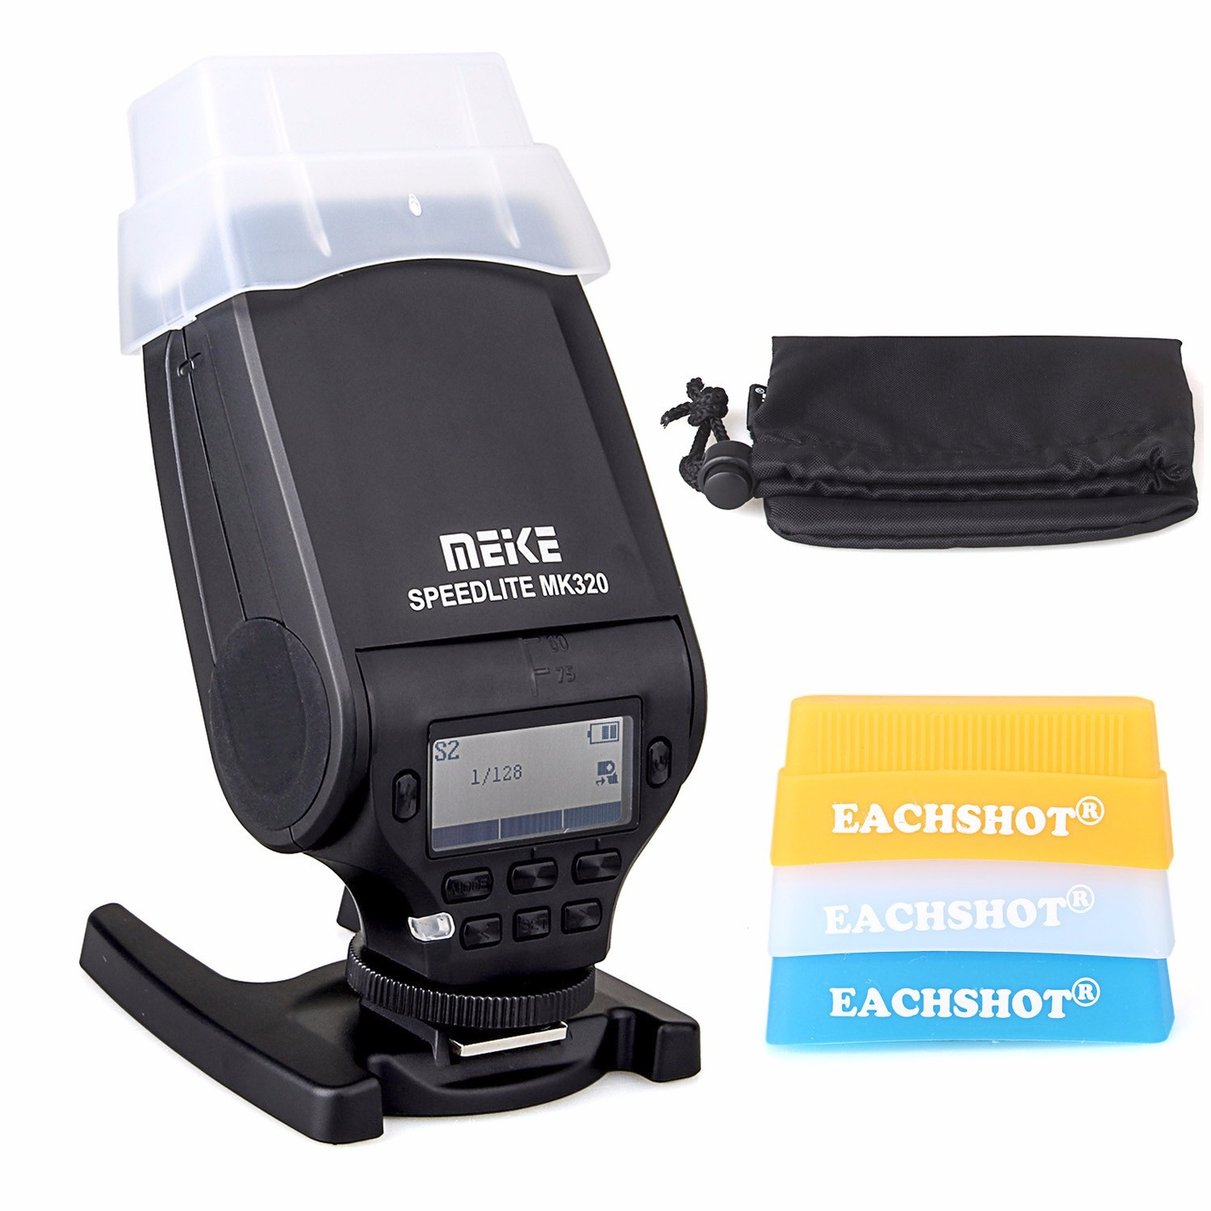 MEIKE MK-320 TTL Master HSS flash Speedlite for Canon EOS M M2 100D 5D II III 6D 7D 60D 70D 600D 7D mark II 700D 1100D T3i T2i mini flash light meike mk320 mk 320 mk320 c gn32 ettl speedlite for can 60d 7d 6d 70d dslr